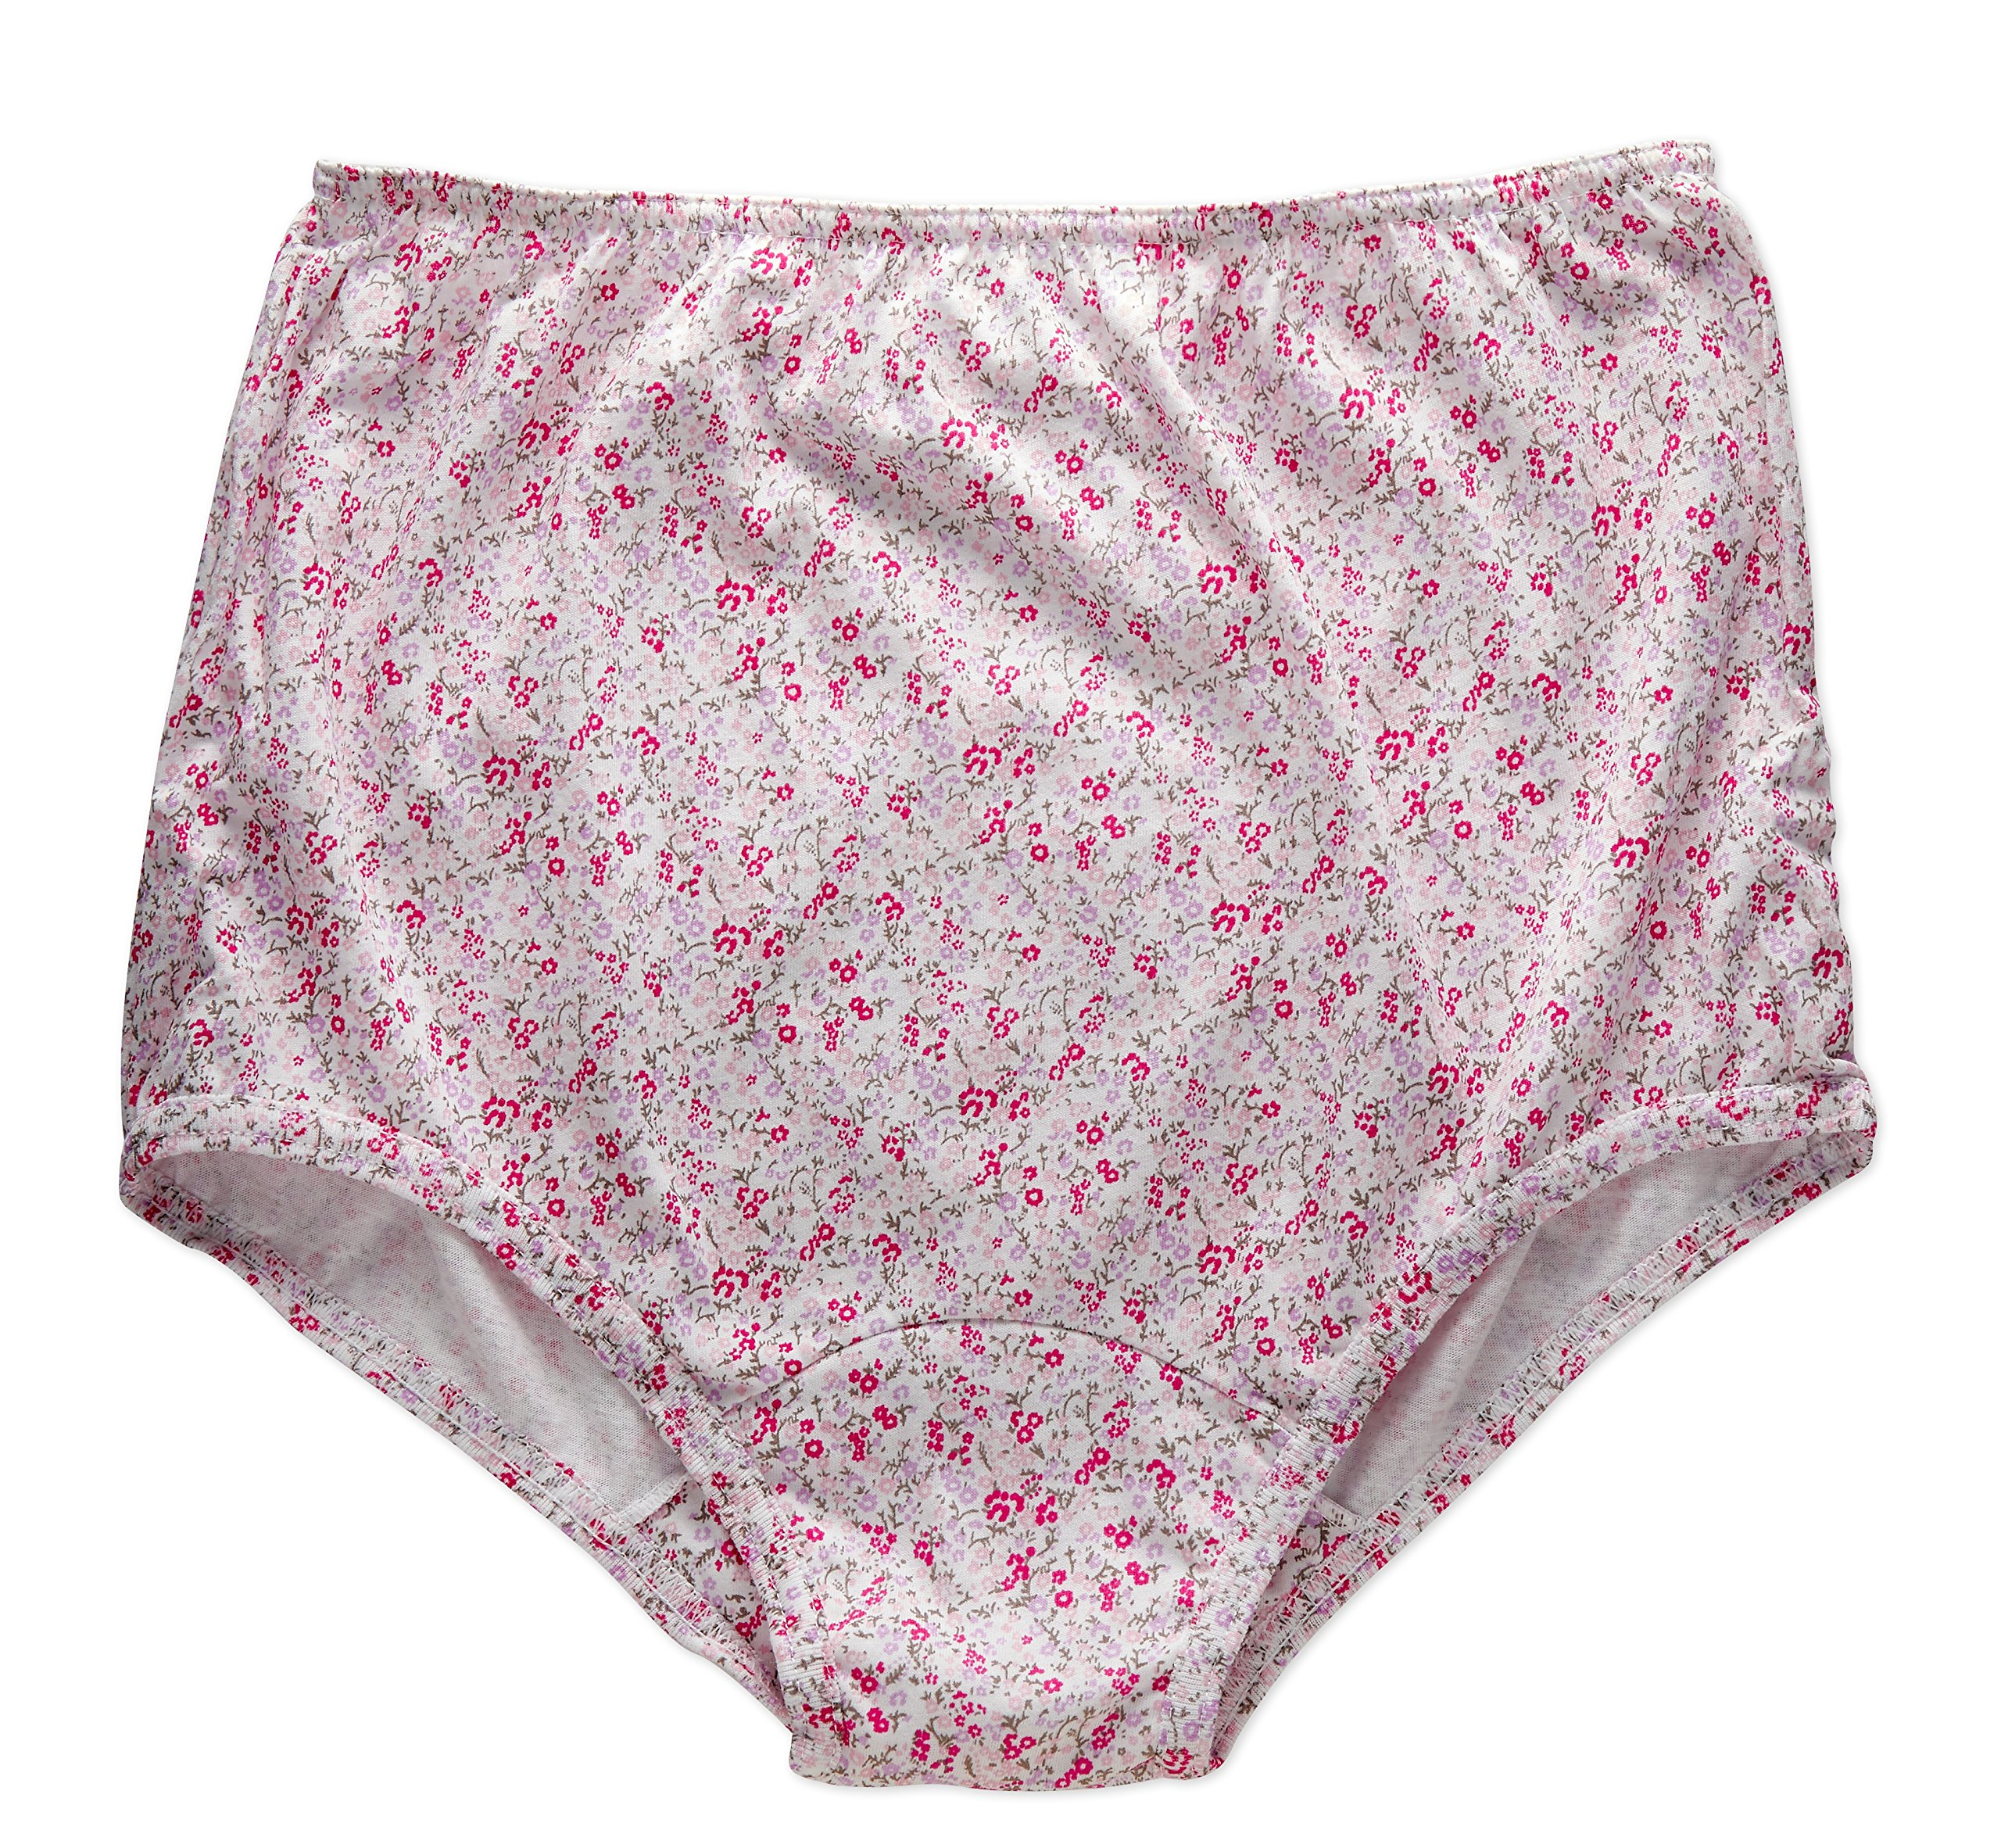 a667a1b5ea48 Galleon - Rossette Women's Classic Full Coverage Brief Panties, Value 3-Pack,  6, Spring